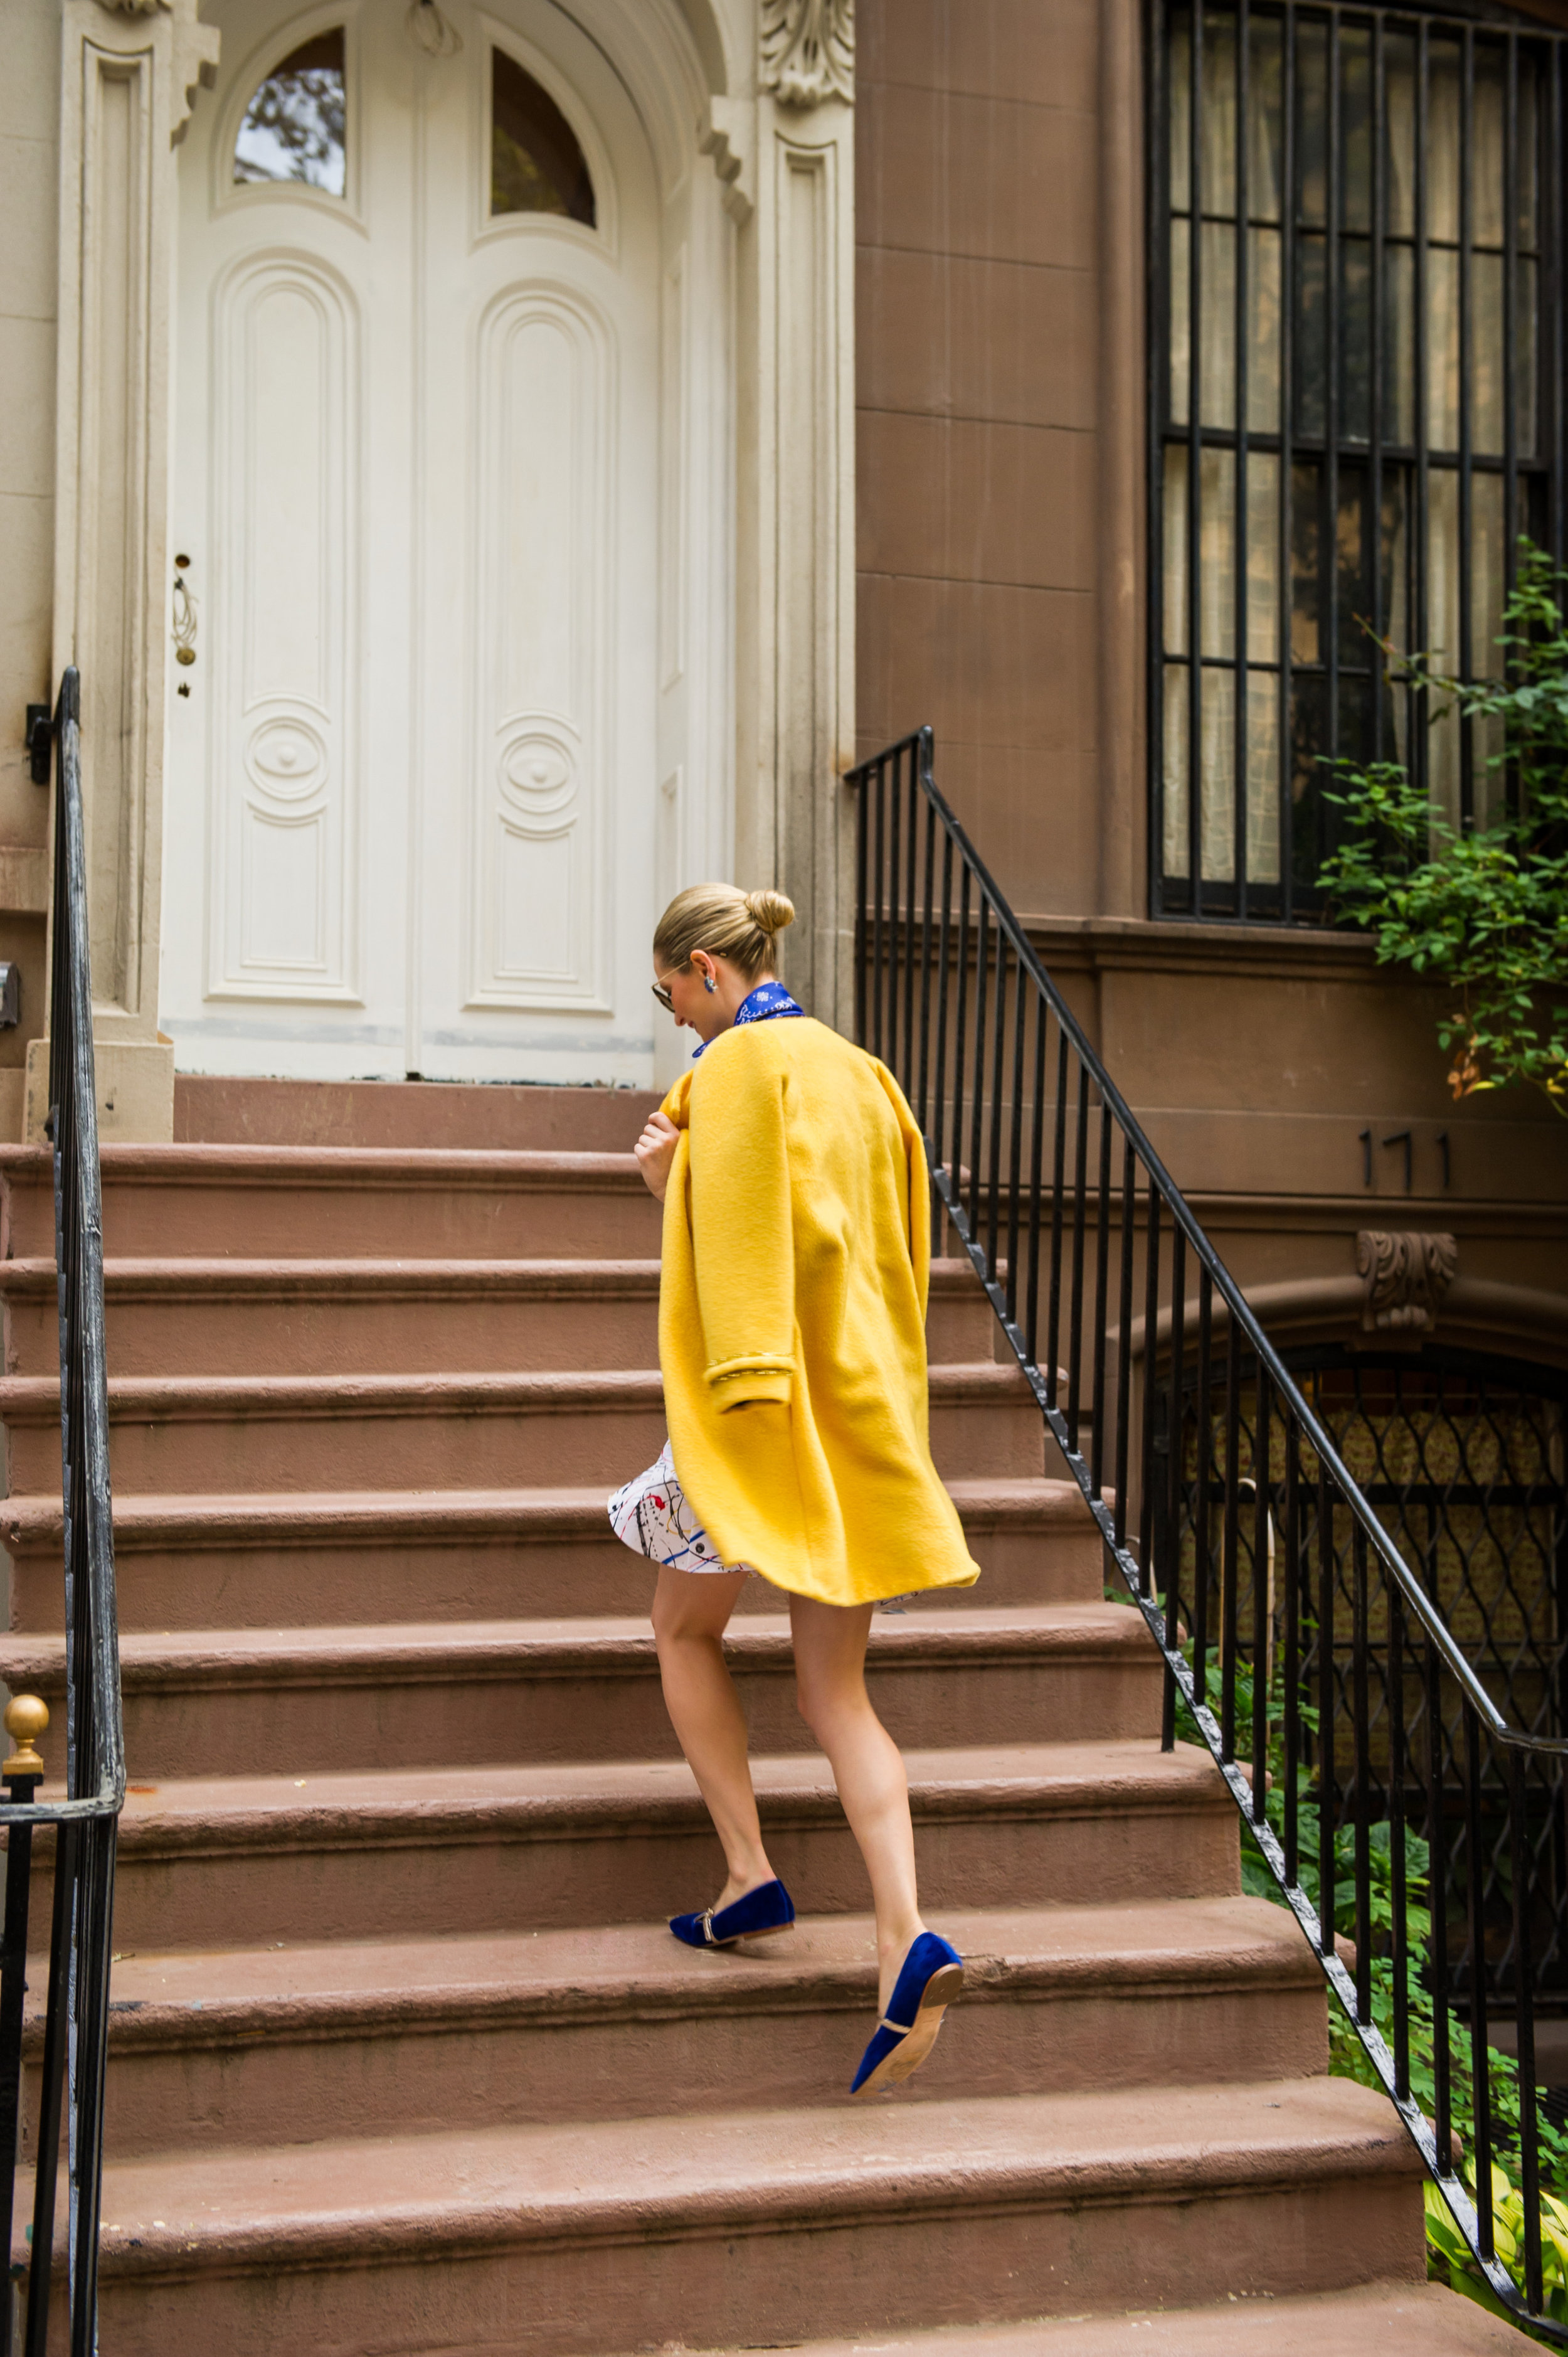 Leaping up the infamous brownstone's staircase